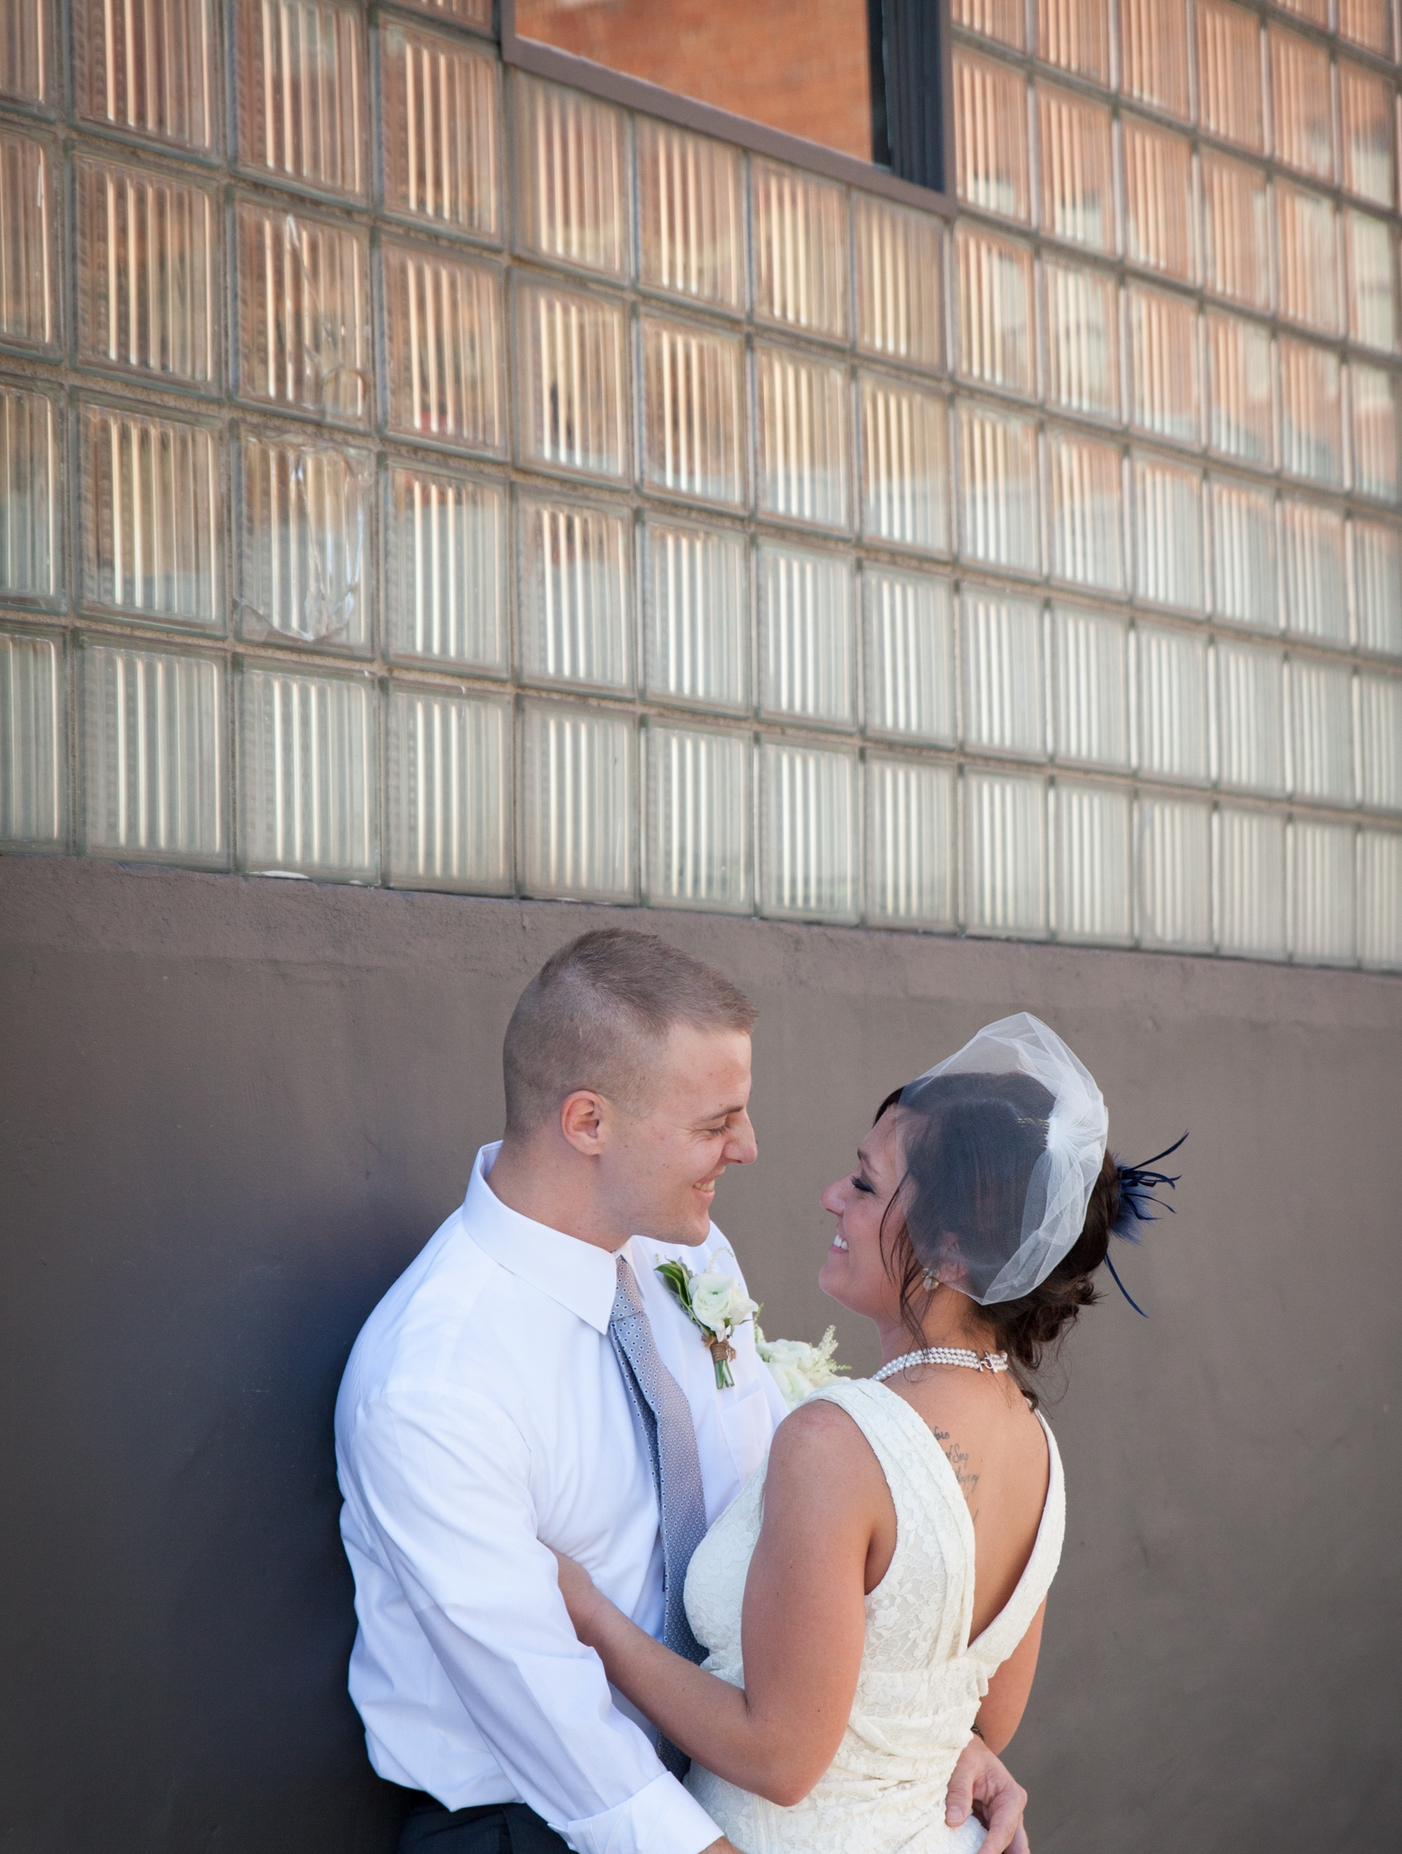 Photography by Anj Olson - a photographer for The Vow Exchange